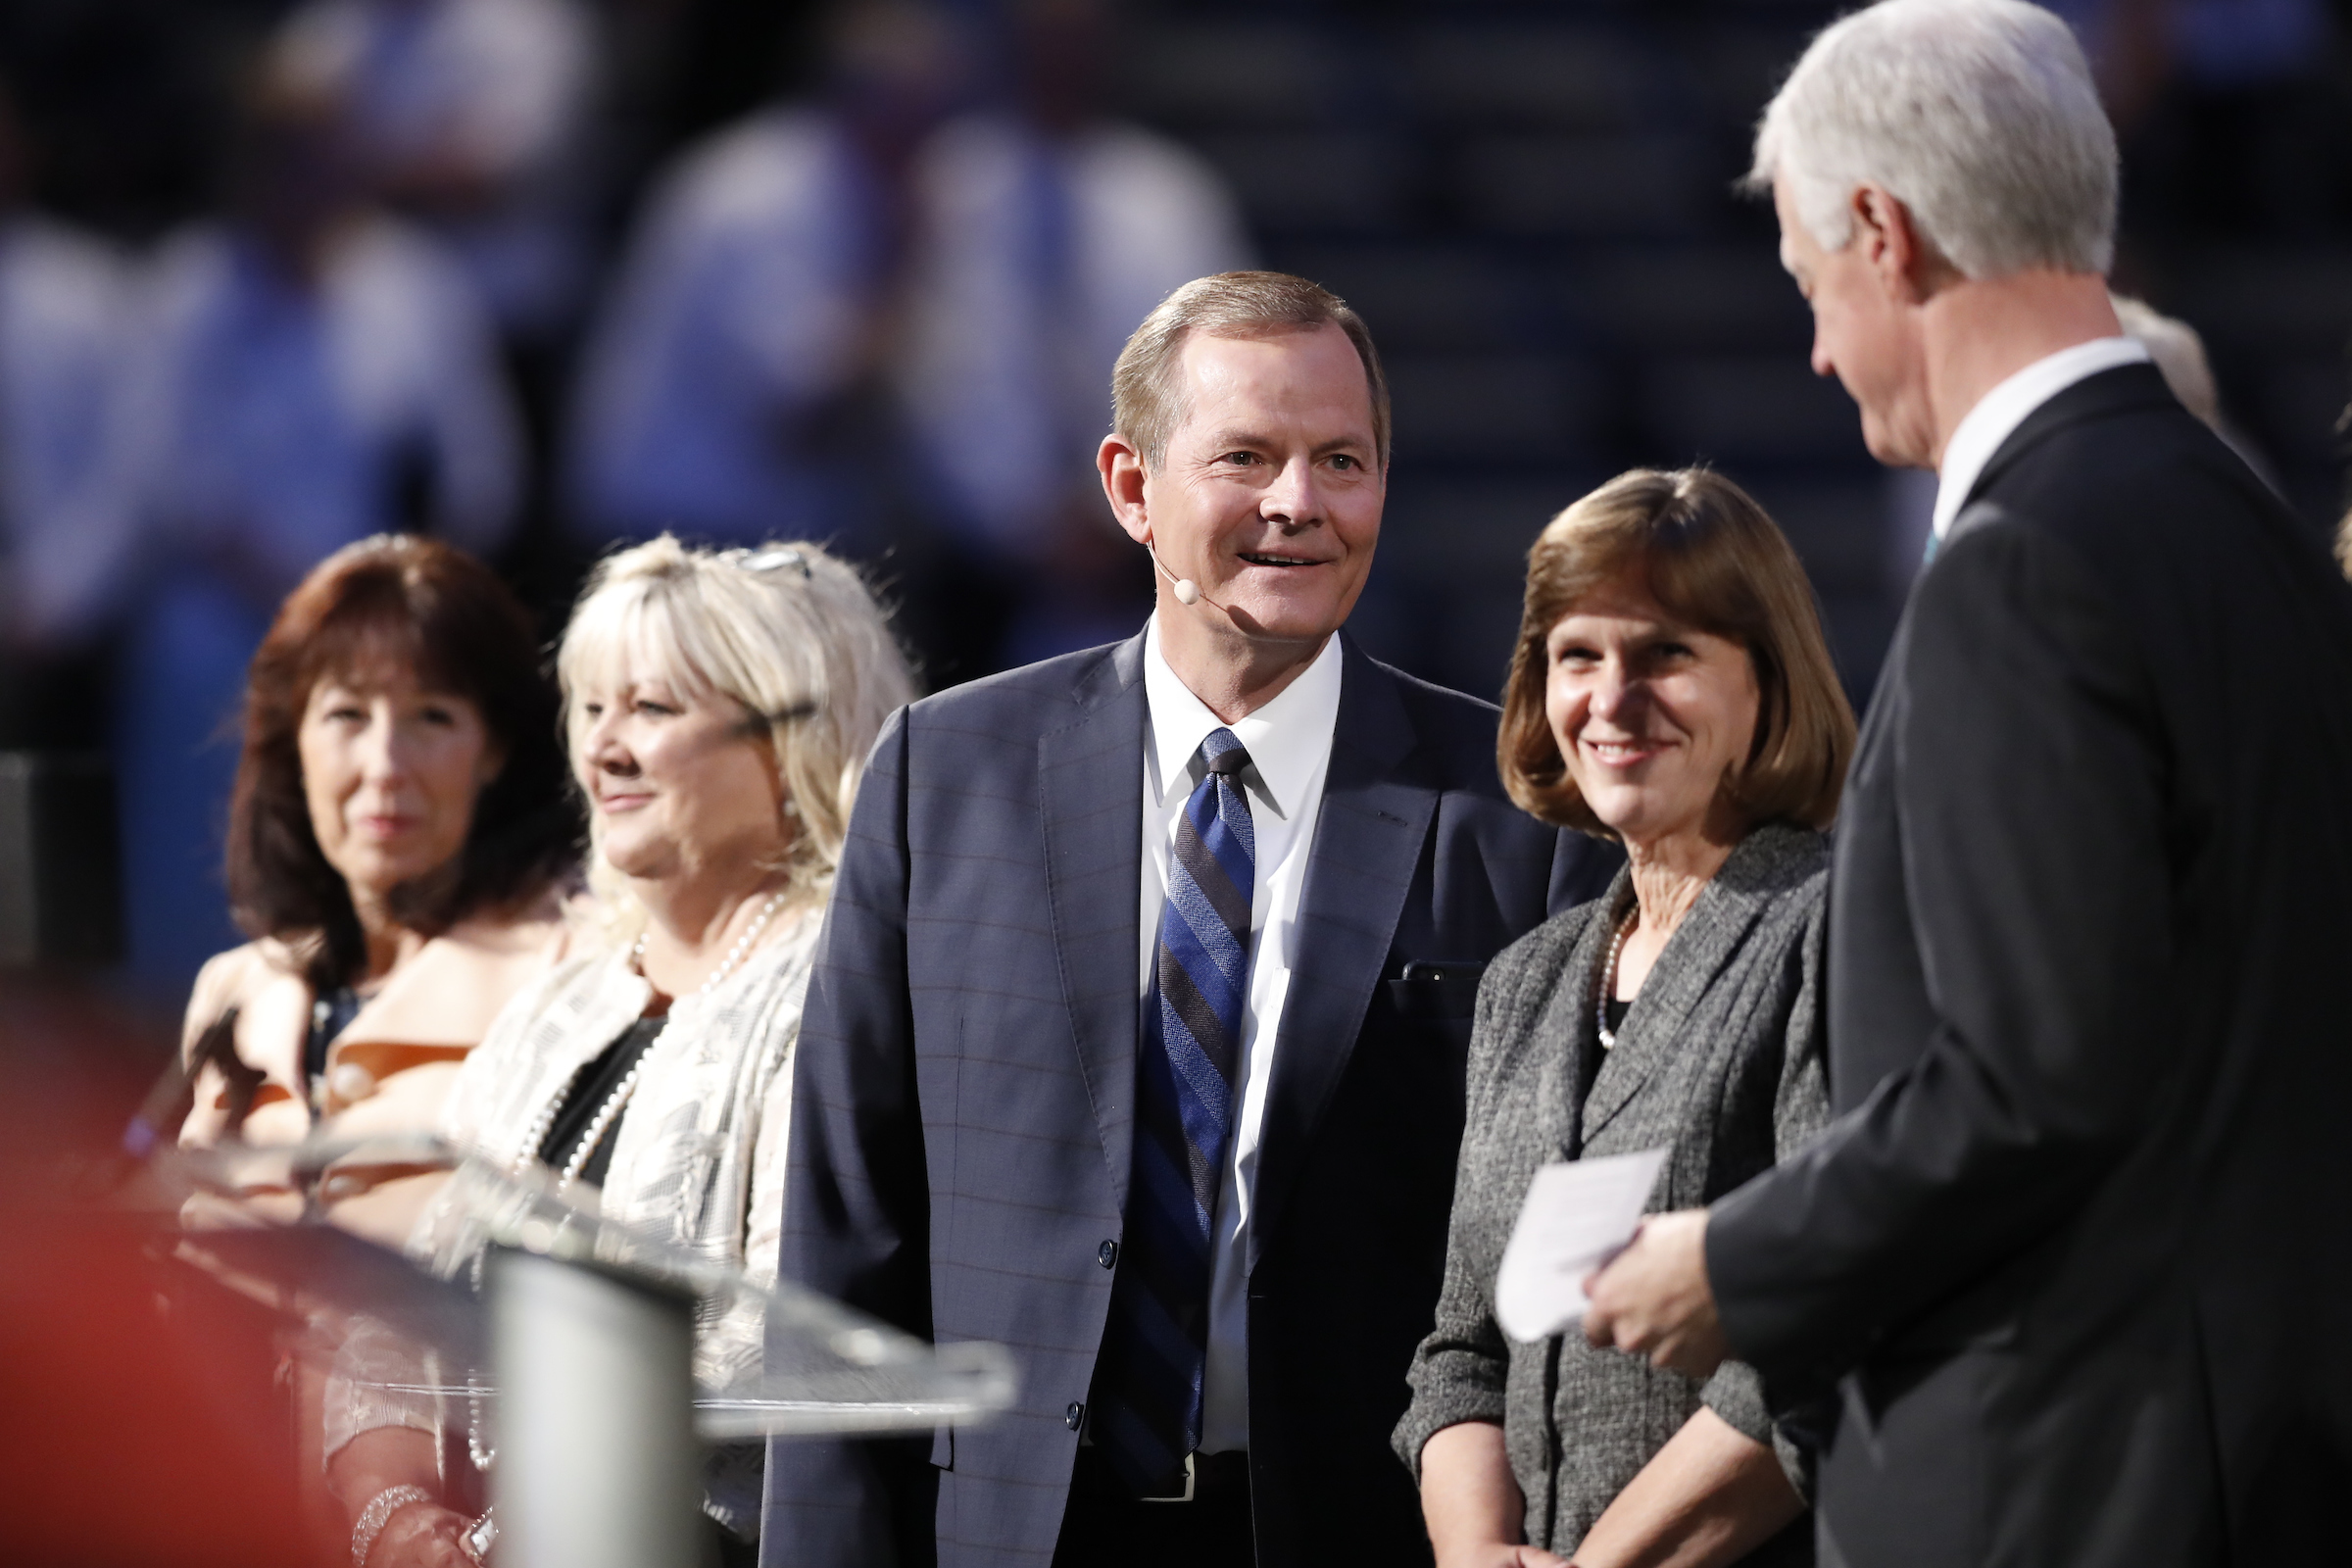 Elder Gary E. Stevenson of the Quorum of the Twelve Apostles, center, and his wife, Sister Lesa Stevenson, left, on the stand with BYU President Kevin J Worthen and his wife, Sister Peggy Worthen, prior to Elder Stevenson speaking at a devotional during BYU Education Week in the Marriott Center on Aug. 20, 2019.